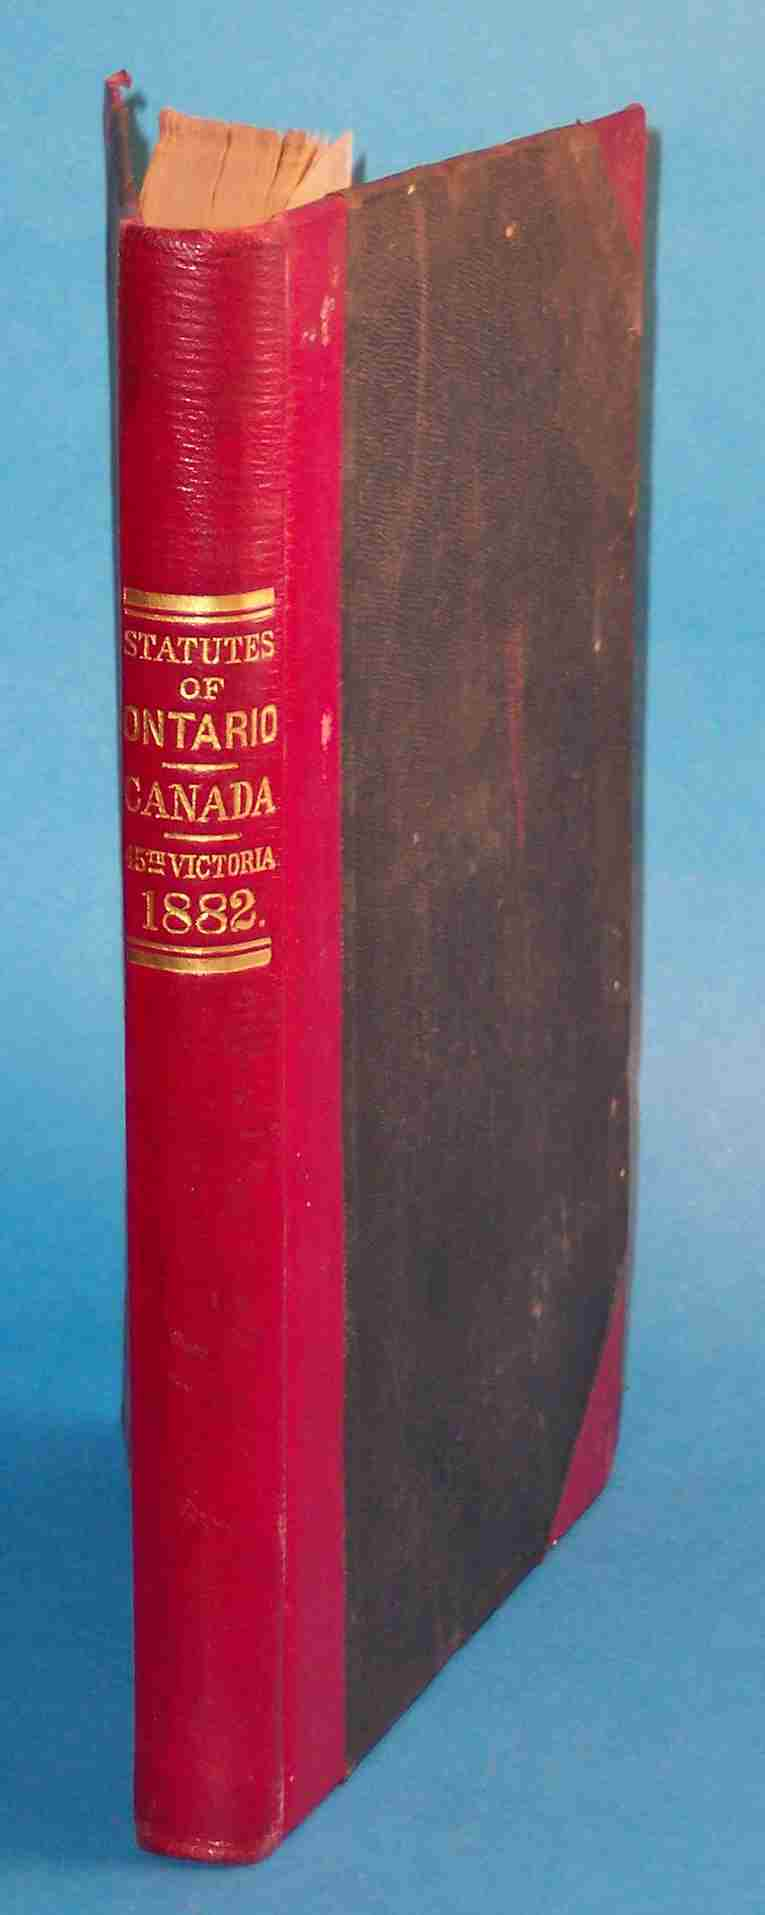 Image for Statutes of the Province of Ontario 1882